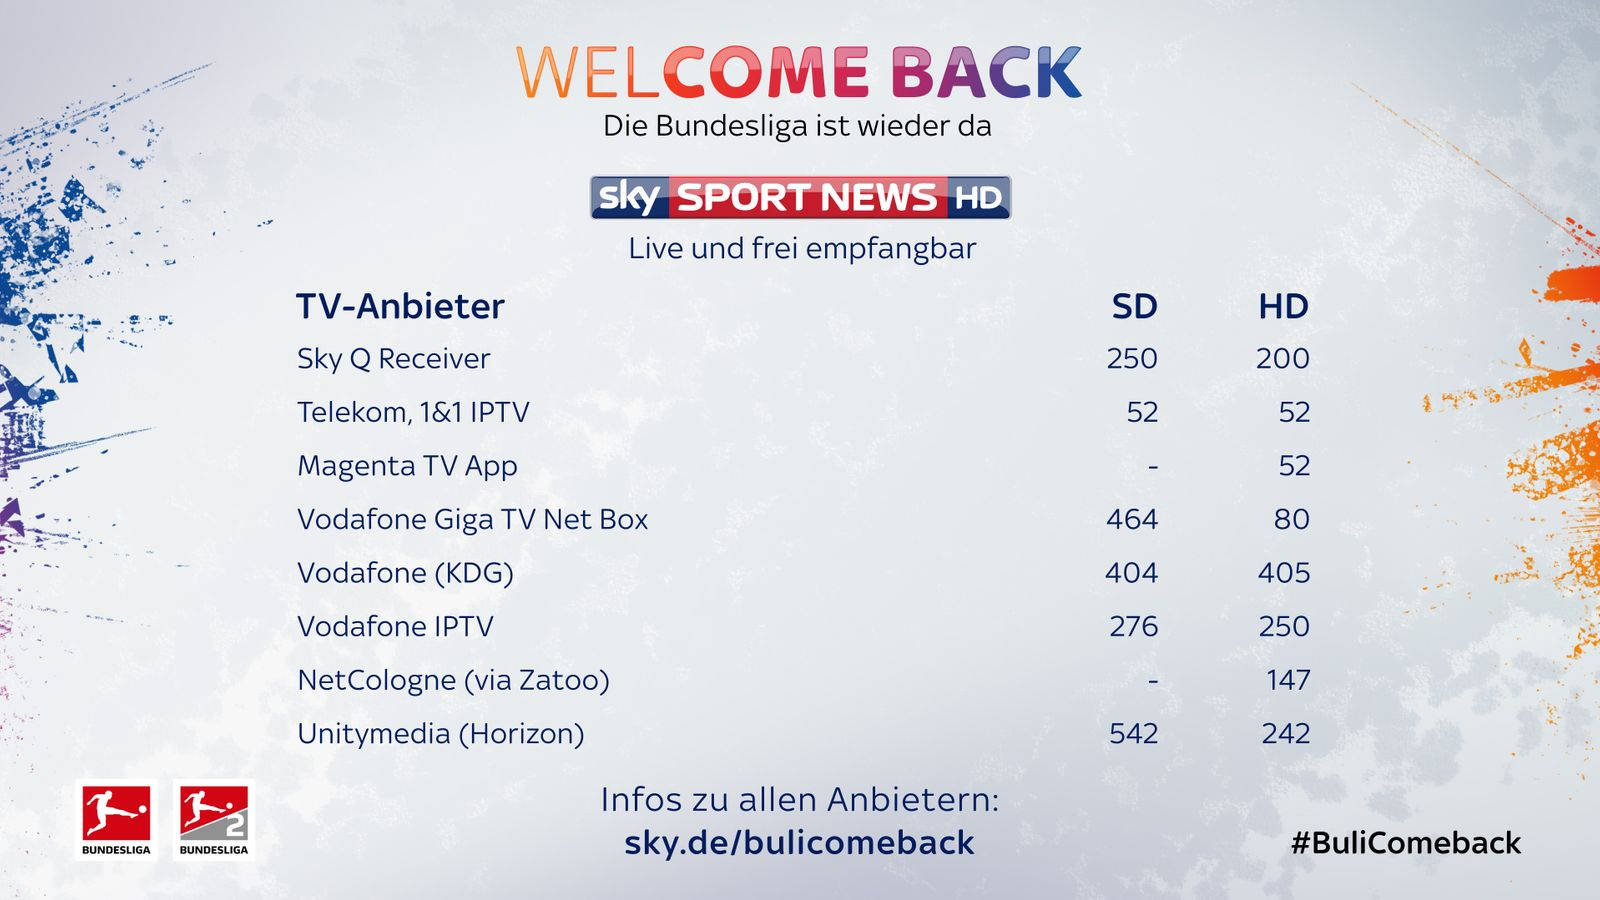 skysport_de-ssn-sky-sport-news-hd_4984991